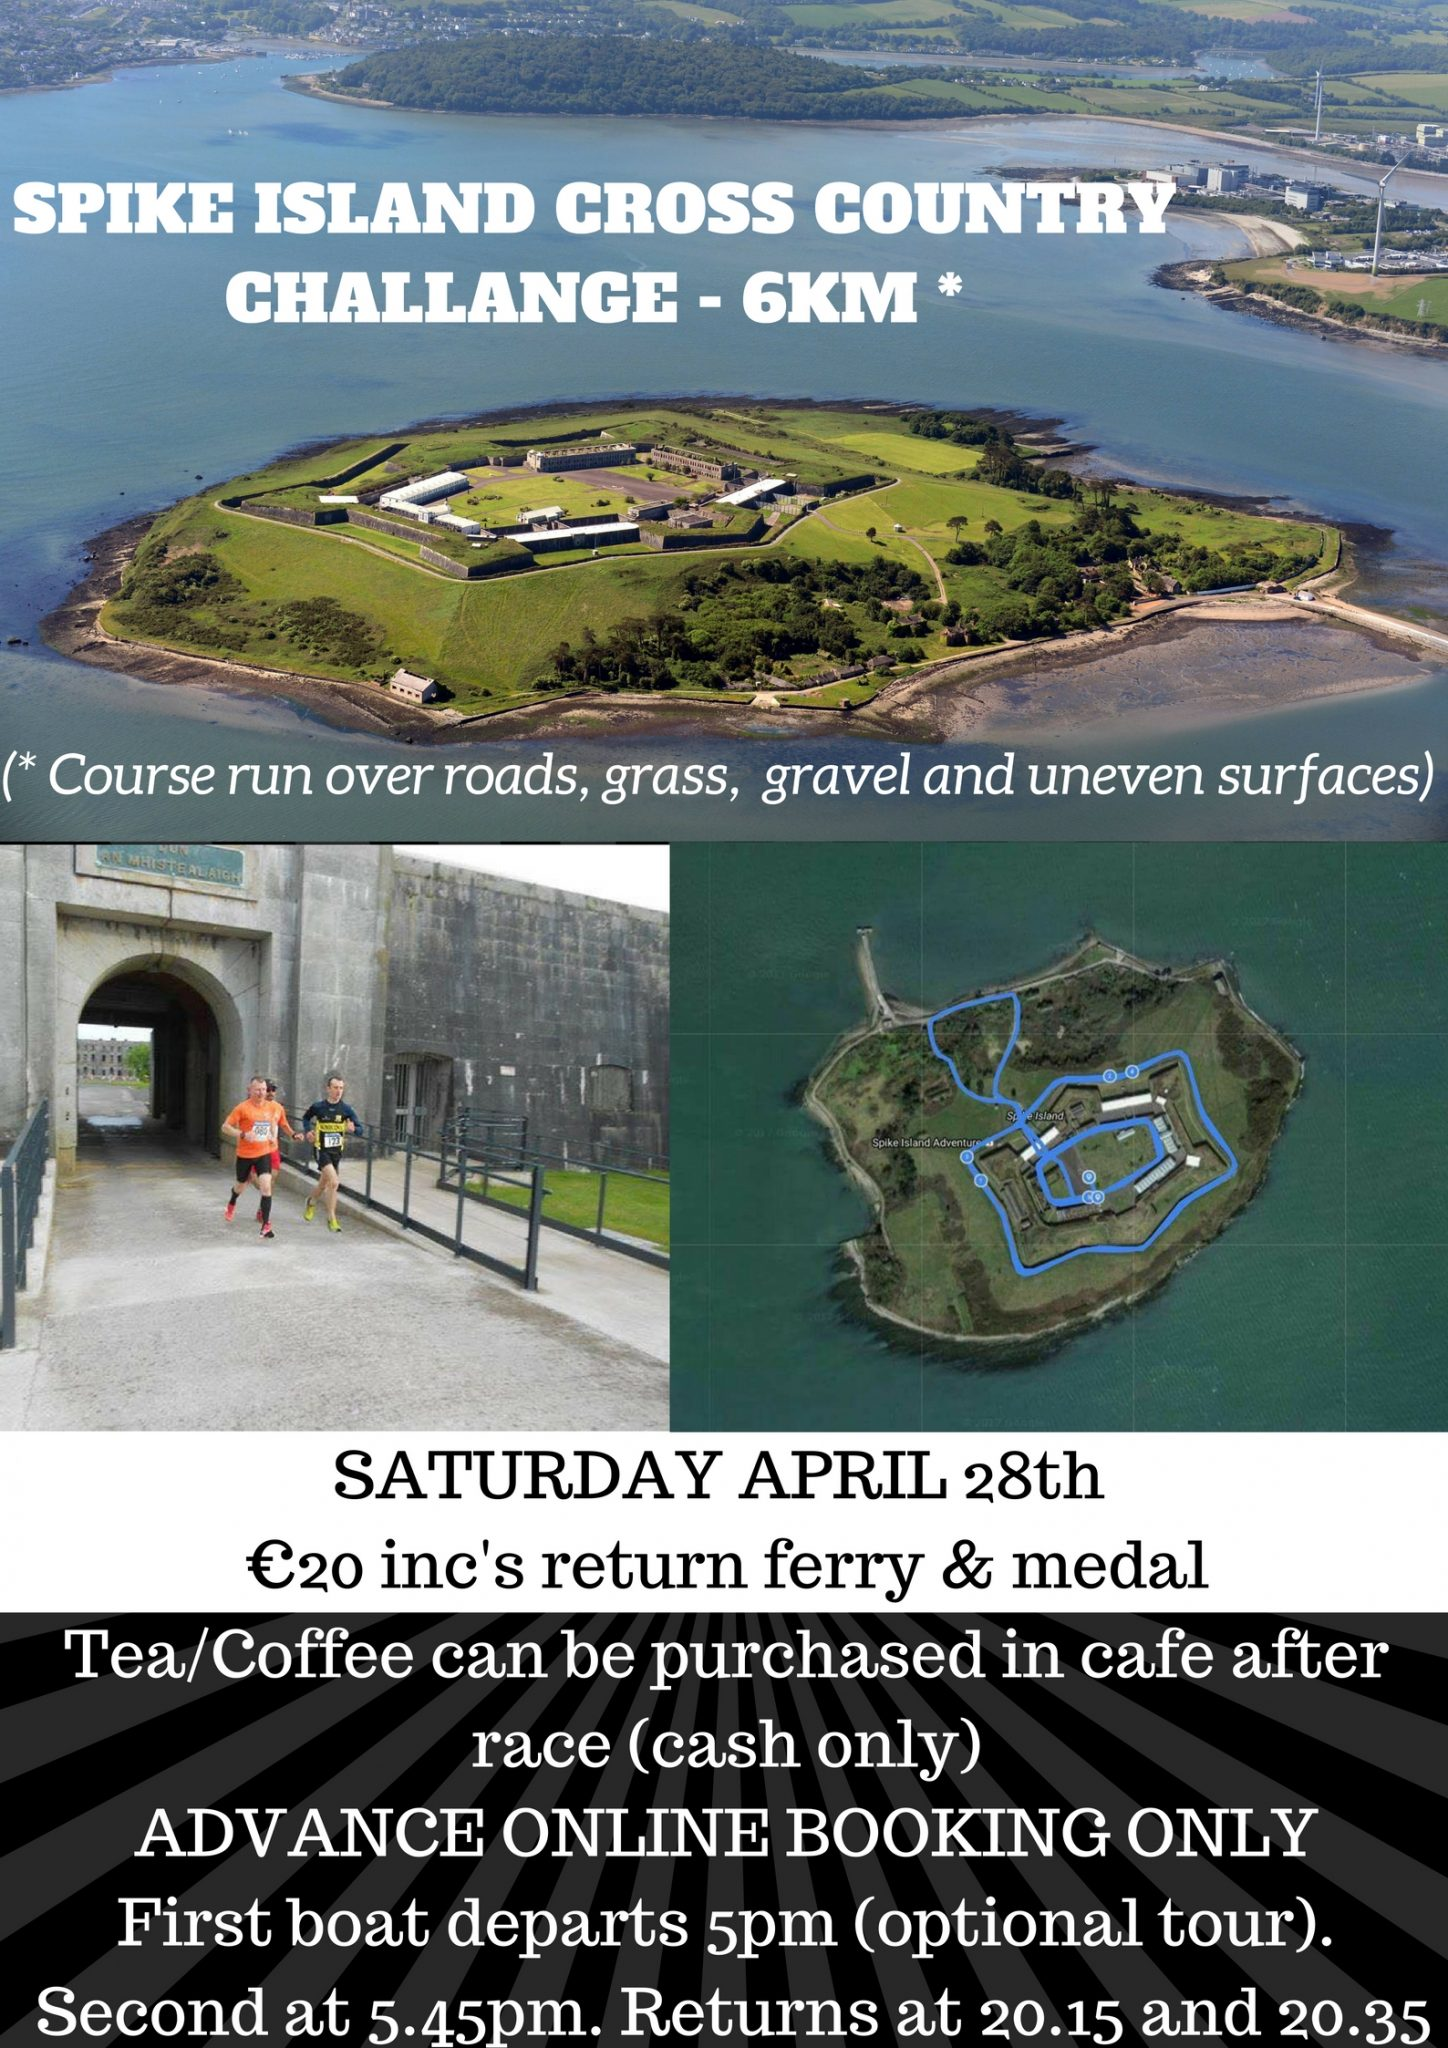 www.ringofcork.ie | Spike Island Cross Country